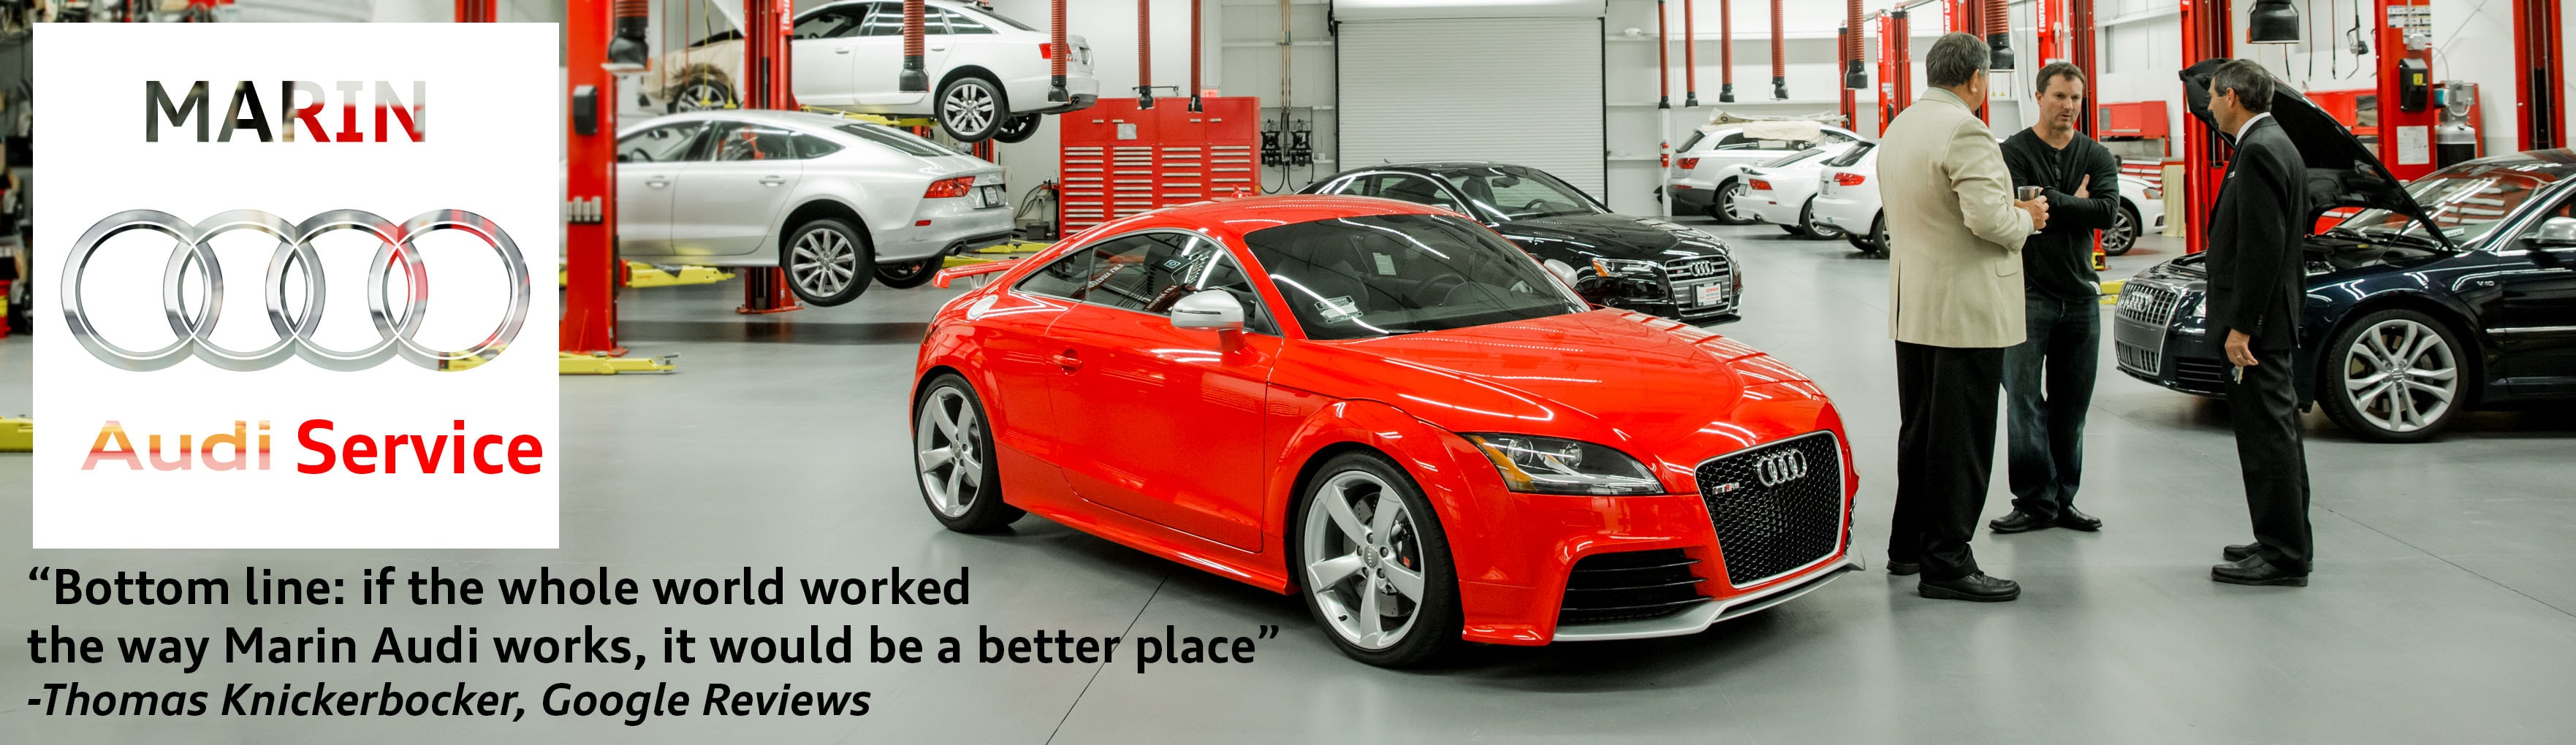 Audi Car Repair Auto Service In San Rafael Serving The San - Audi san francisco service